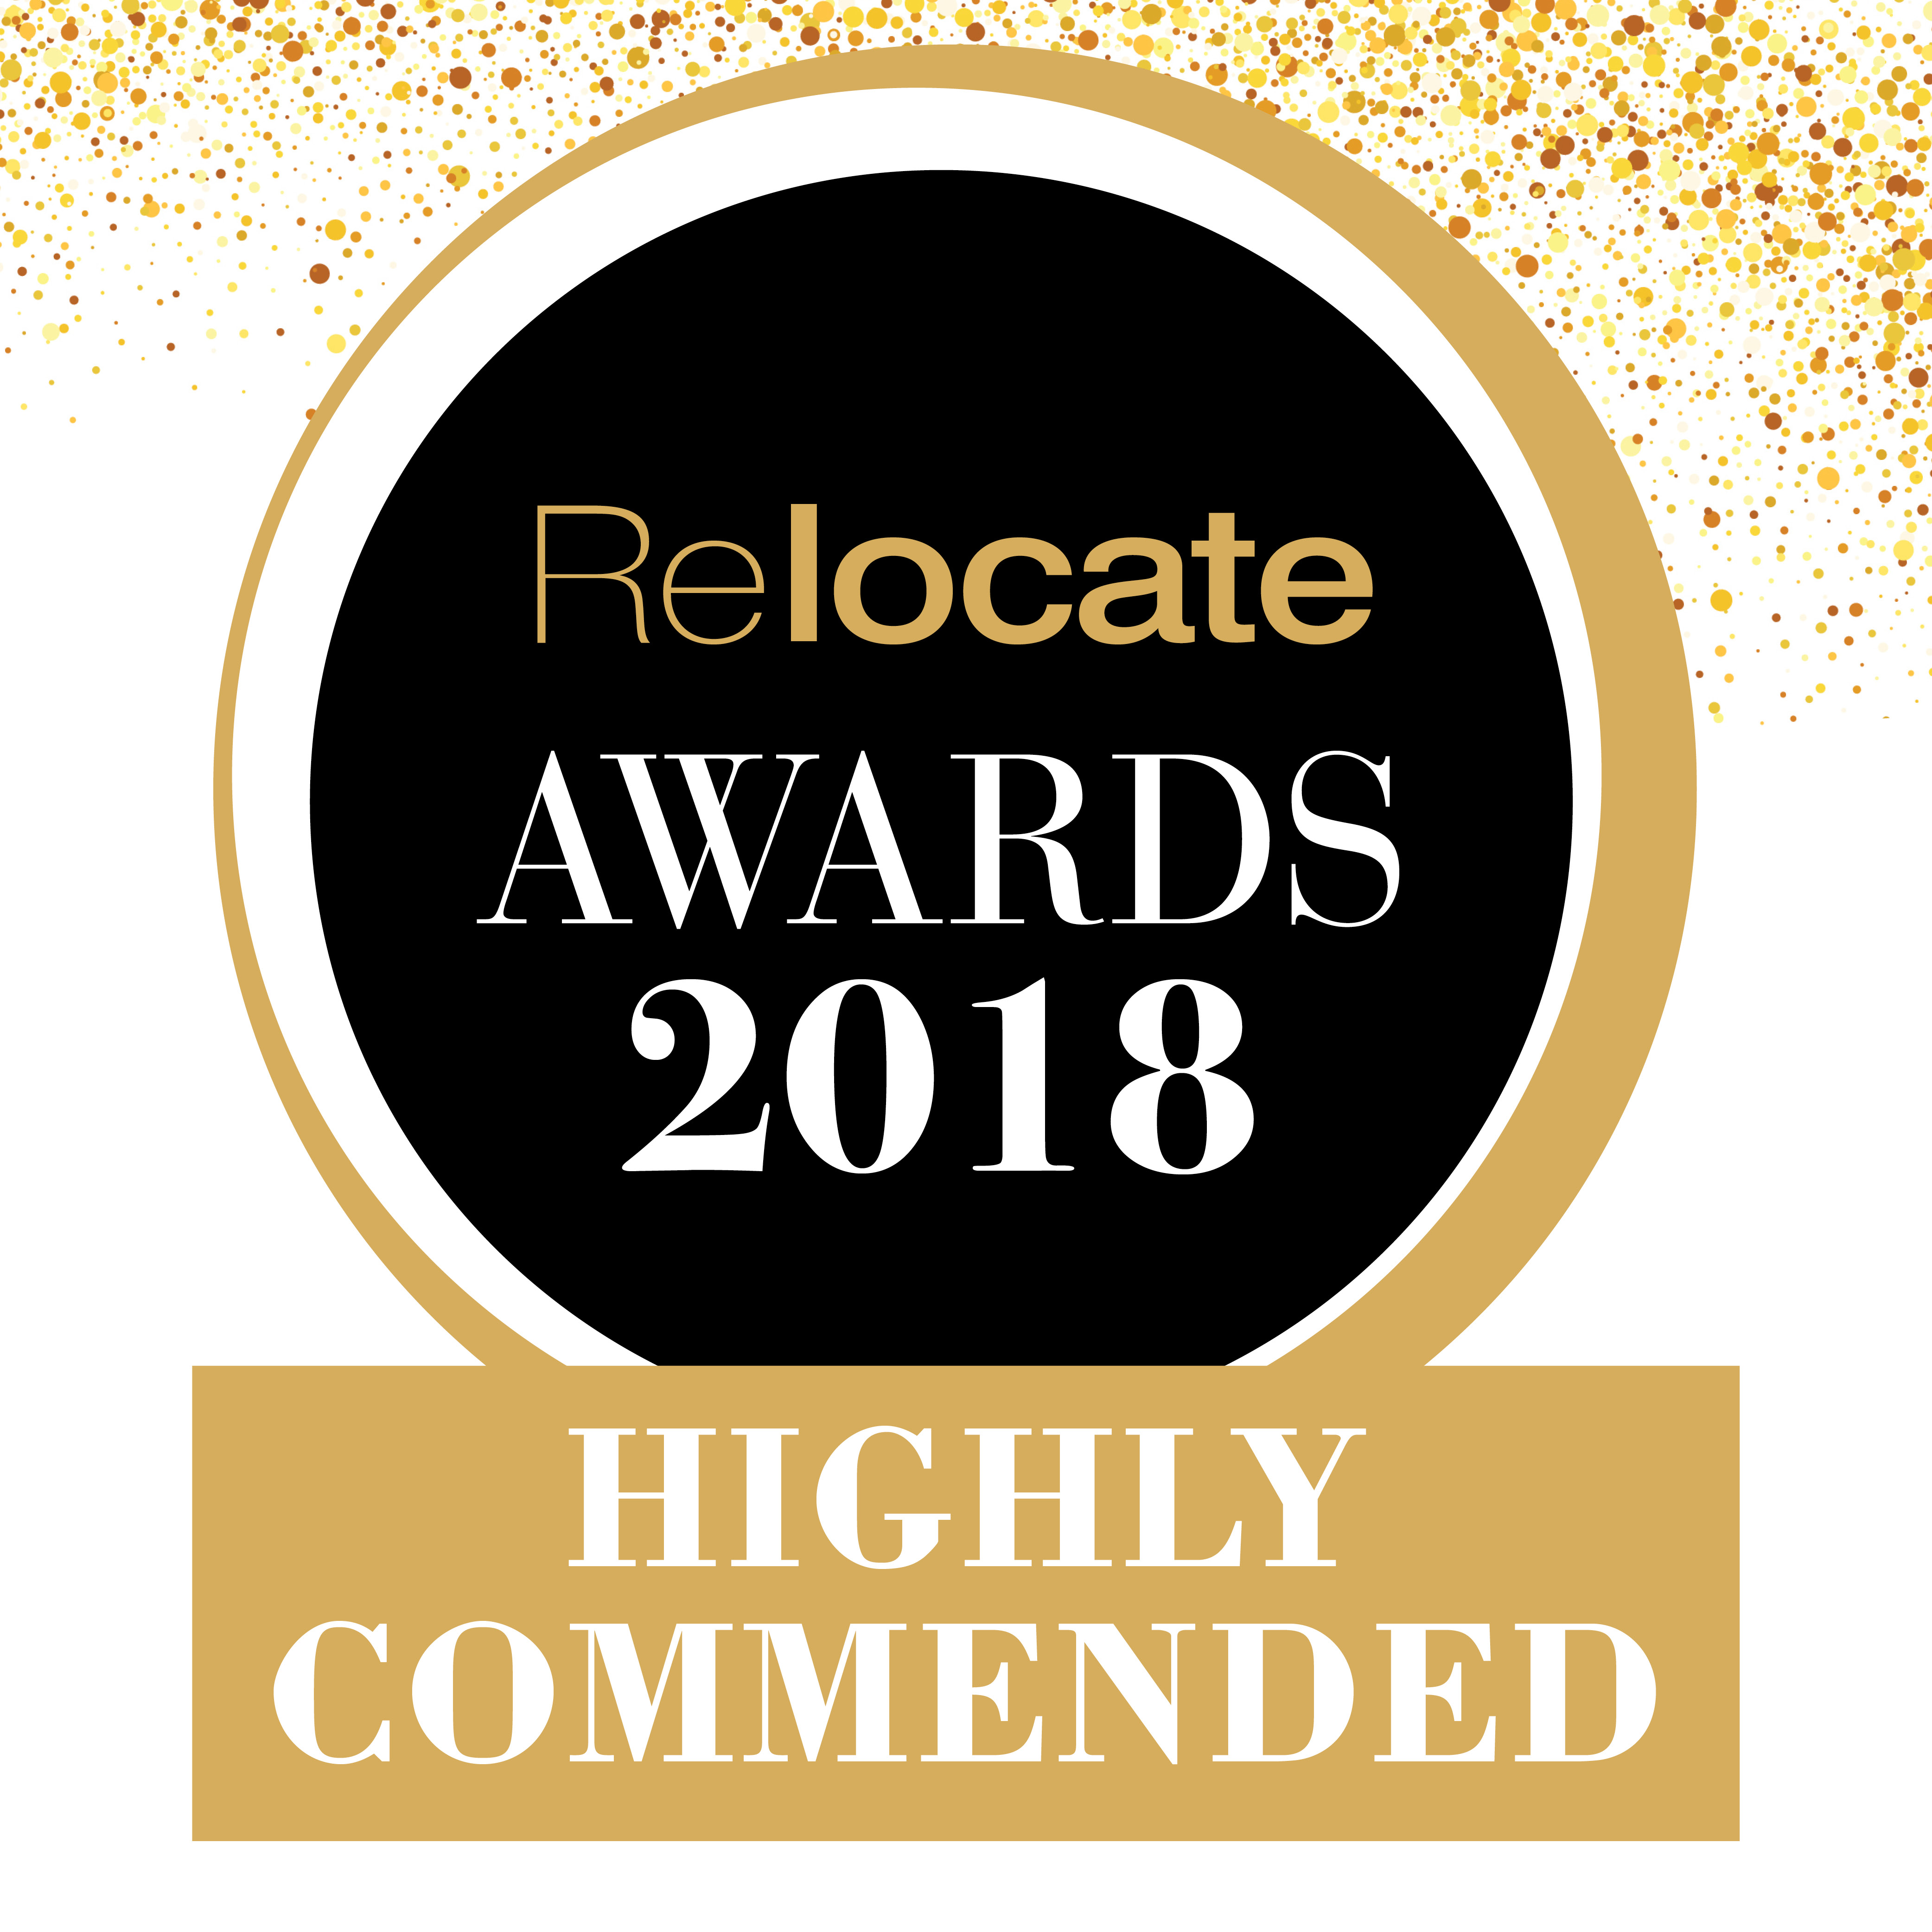 Relocate Awards highly Commended